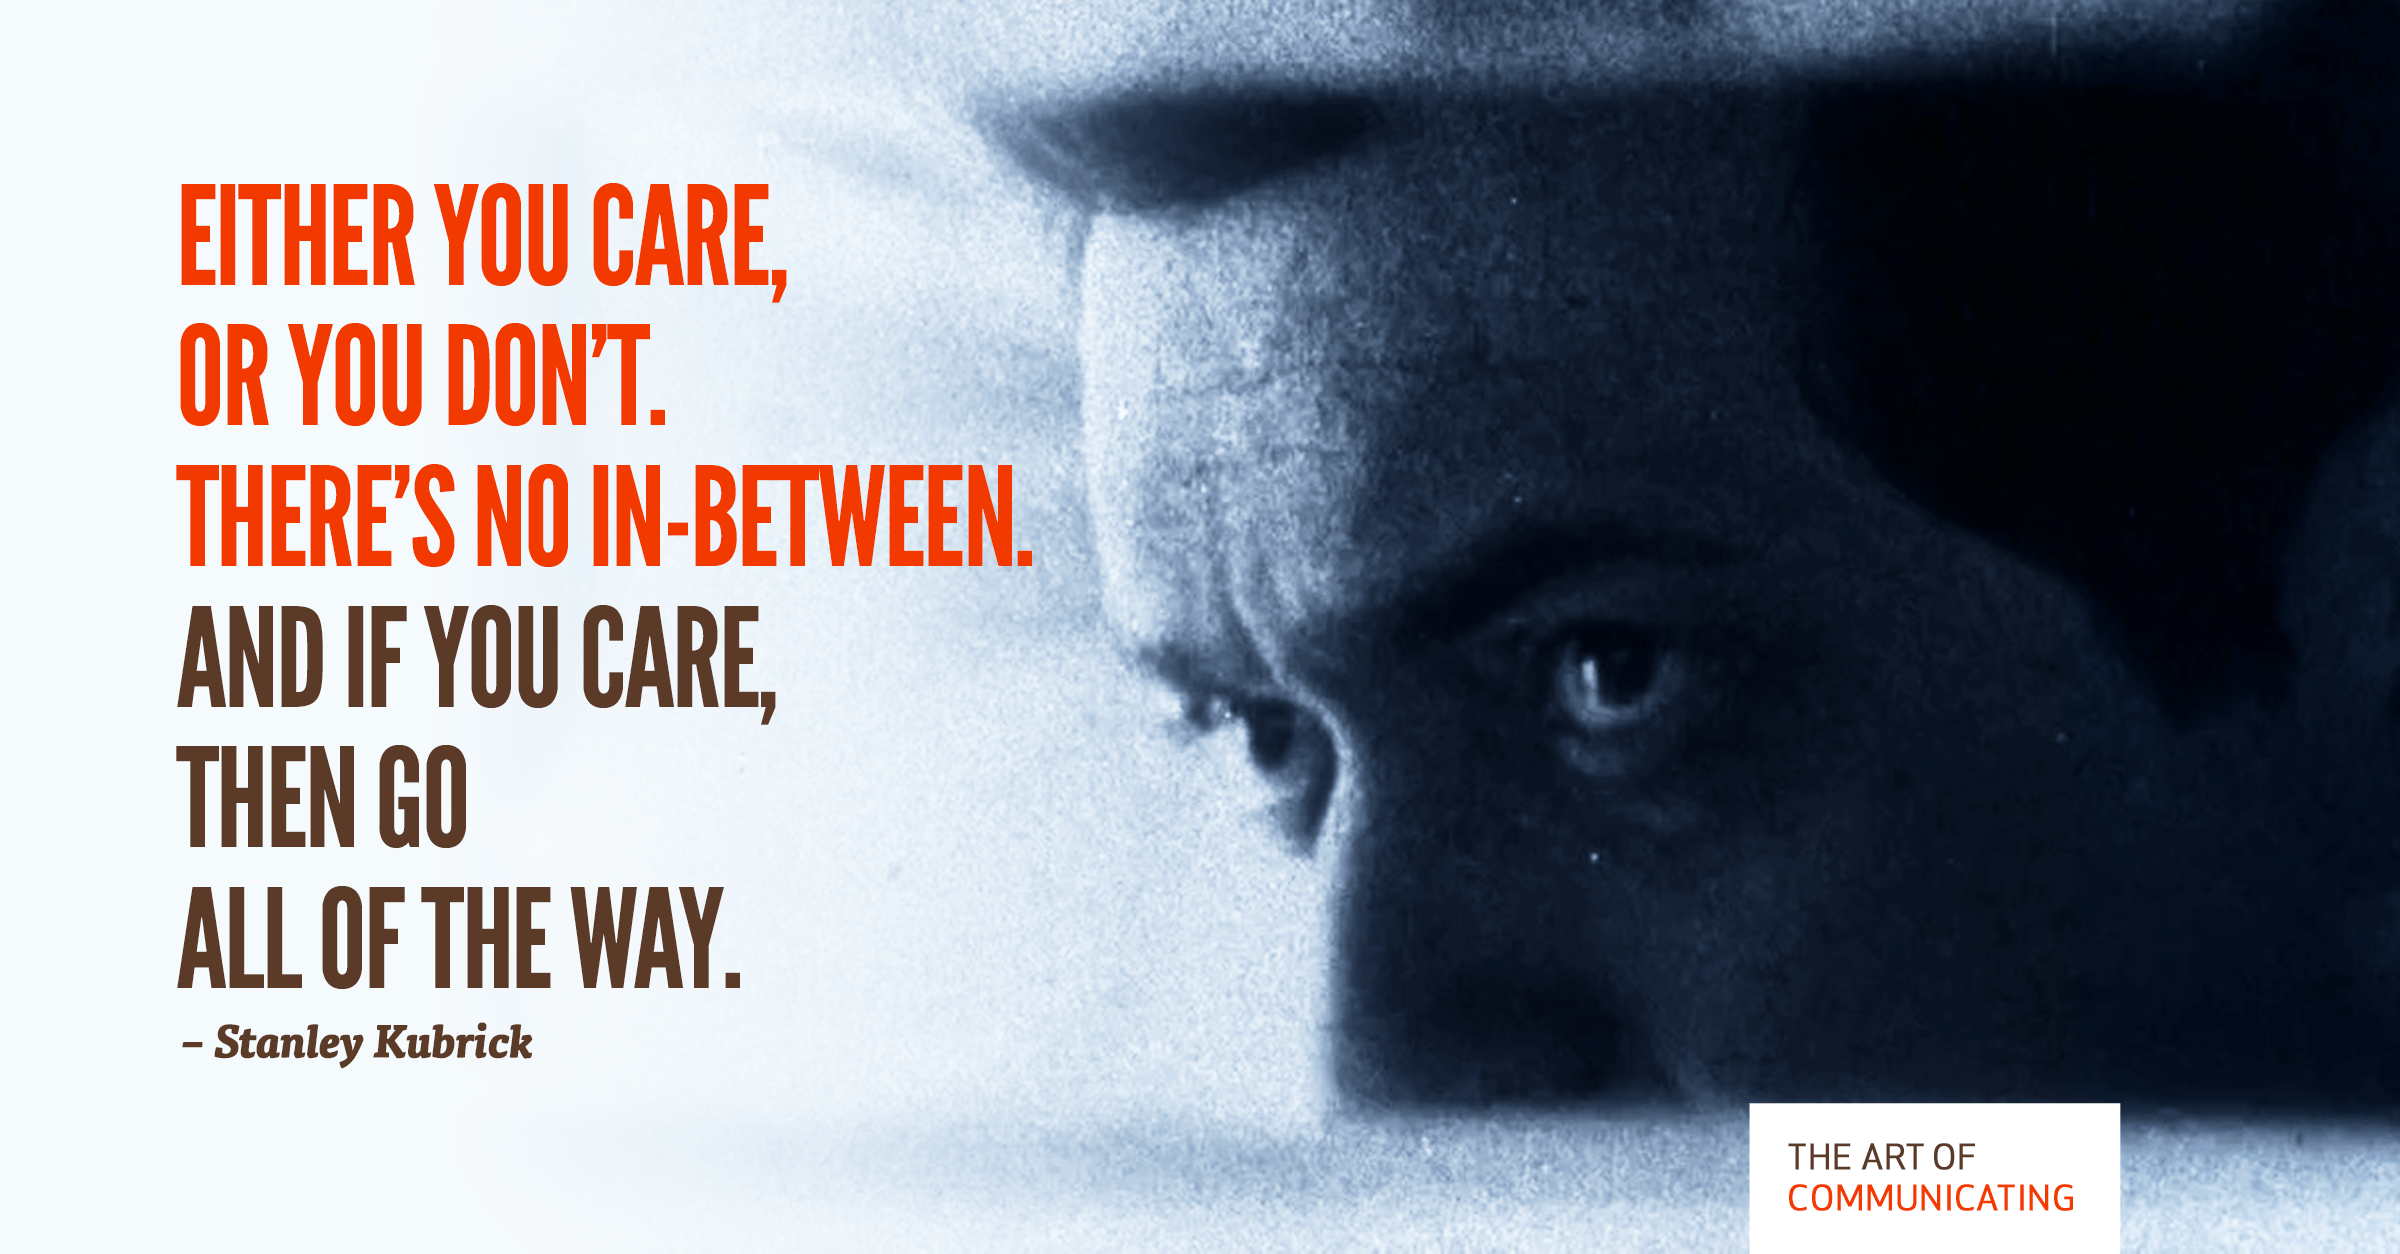 """Either you care or you don't"" – Stanley Kubrick"